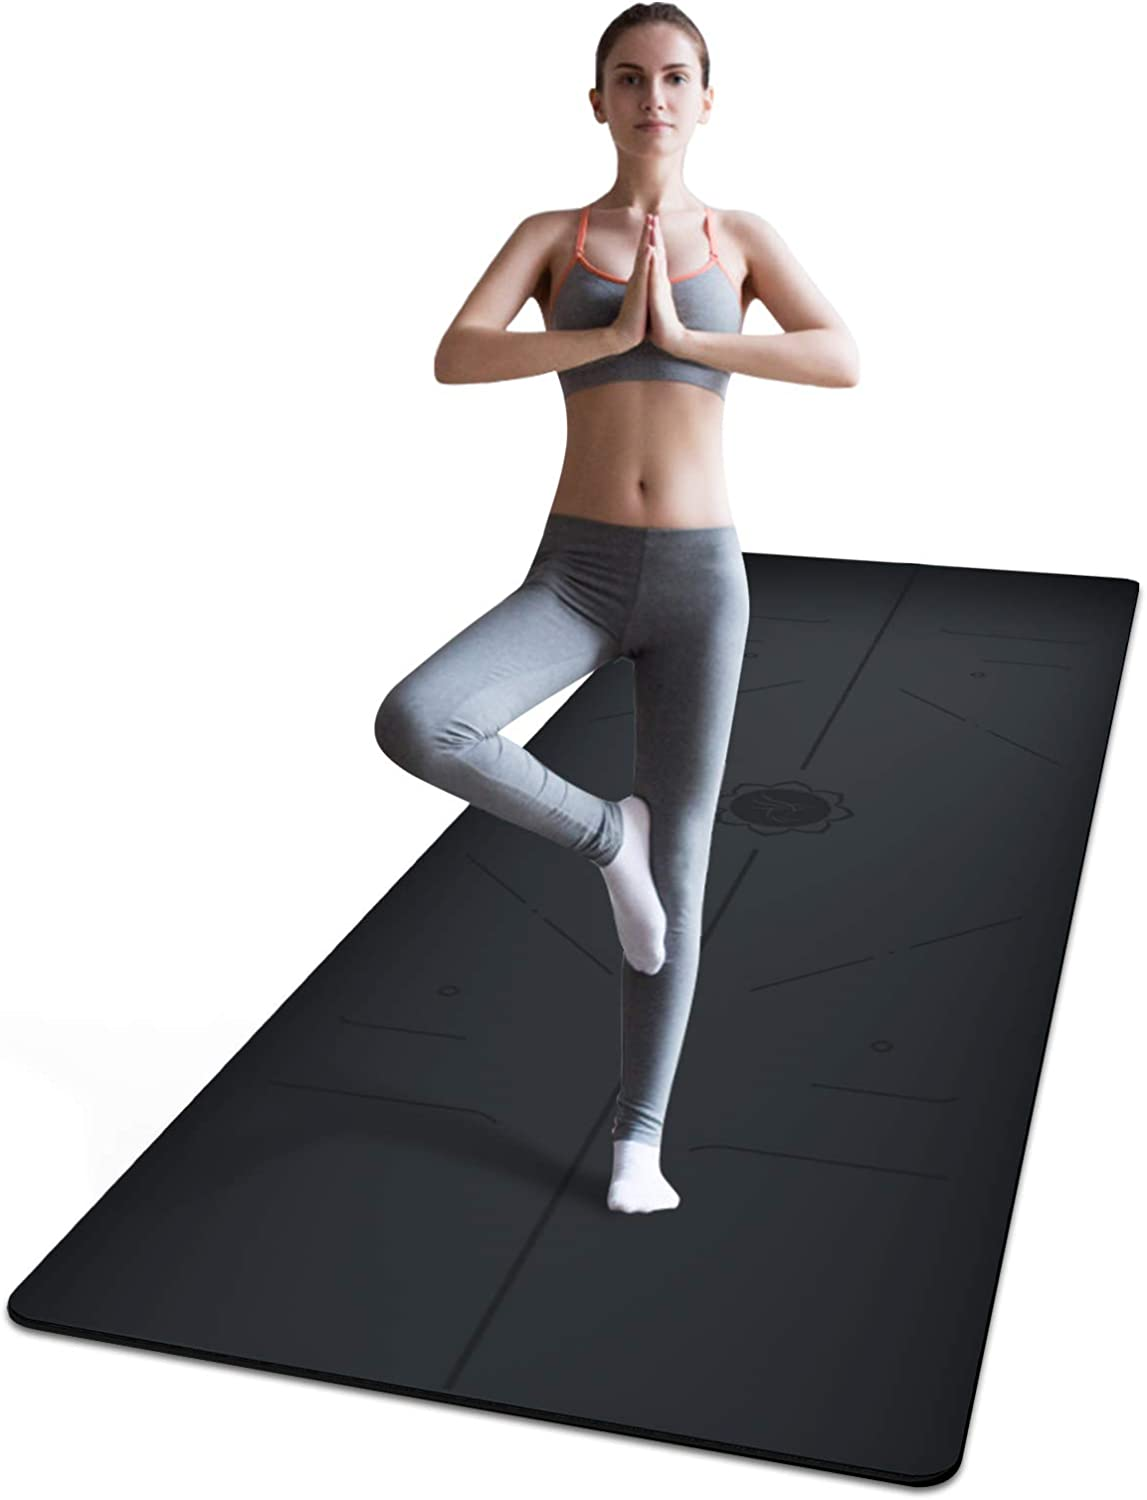 """PU Rubber Eco Friendly Material for Hot Yoga and Bikram Free Carry Strap Wunder Pilates Non Slip Yoga Mat 5mm Odorless Lightweight and Extra Large Size 72/""""X26/"""""""